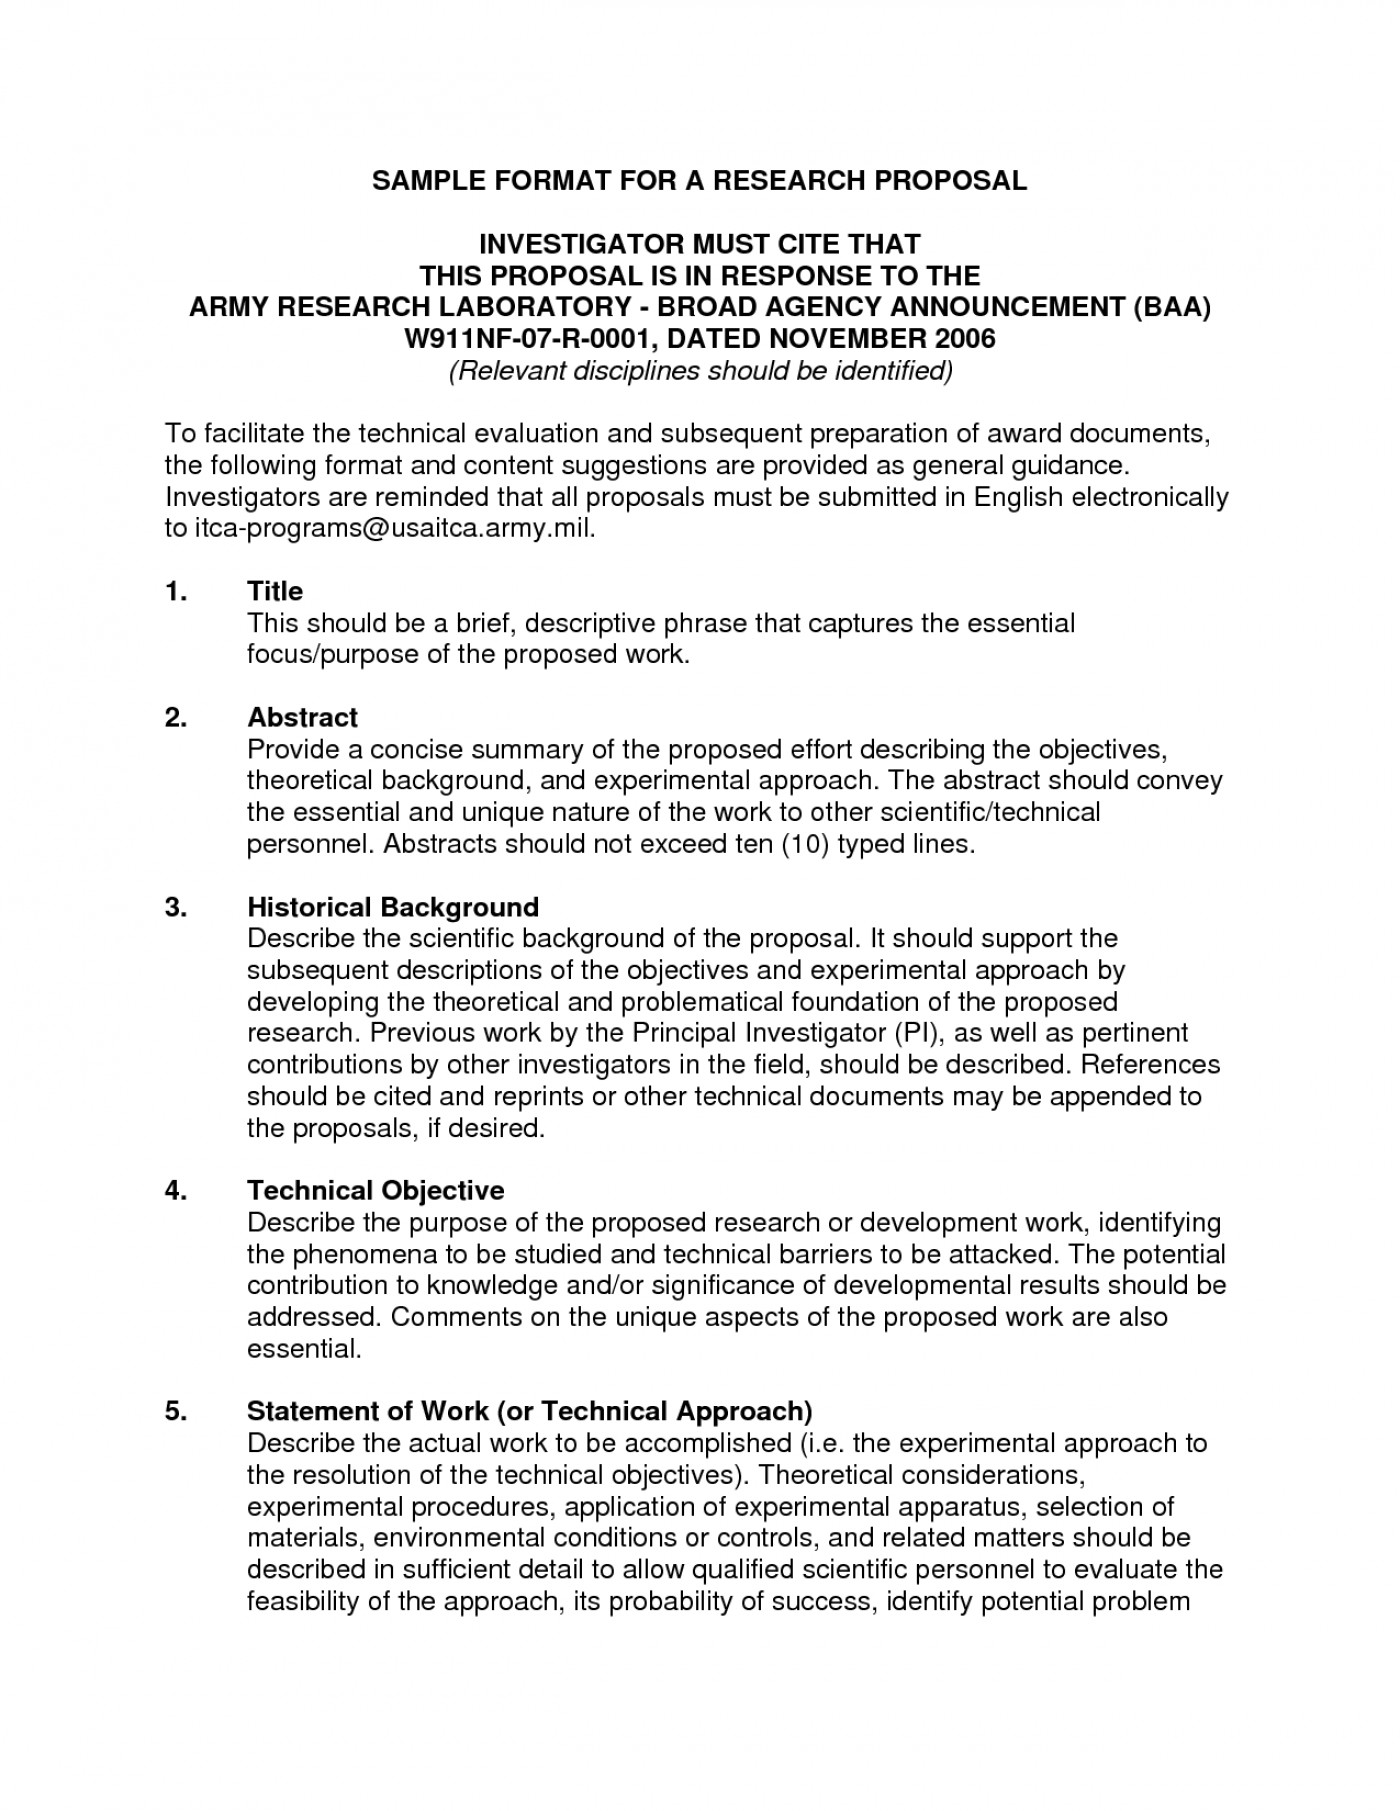 004 Research Proposal Template Qicmwzxw How To Write Abstract For Paper Stirring Ppt 1400